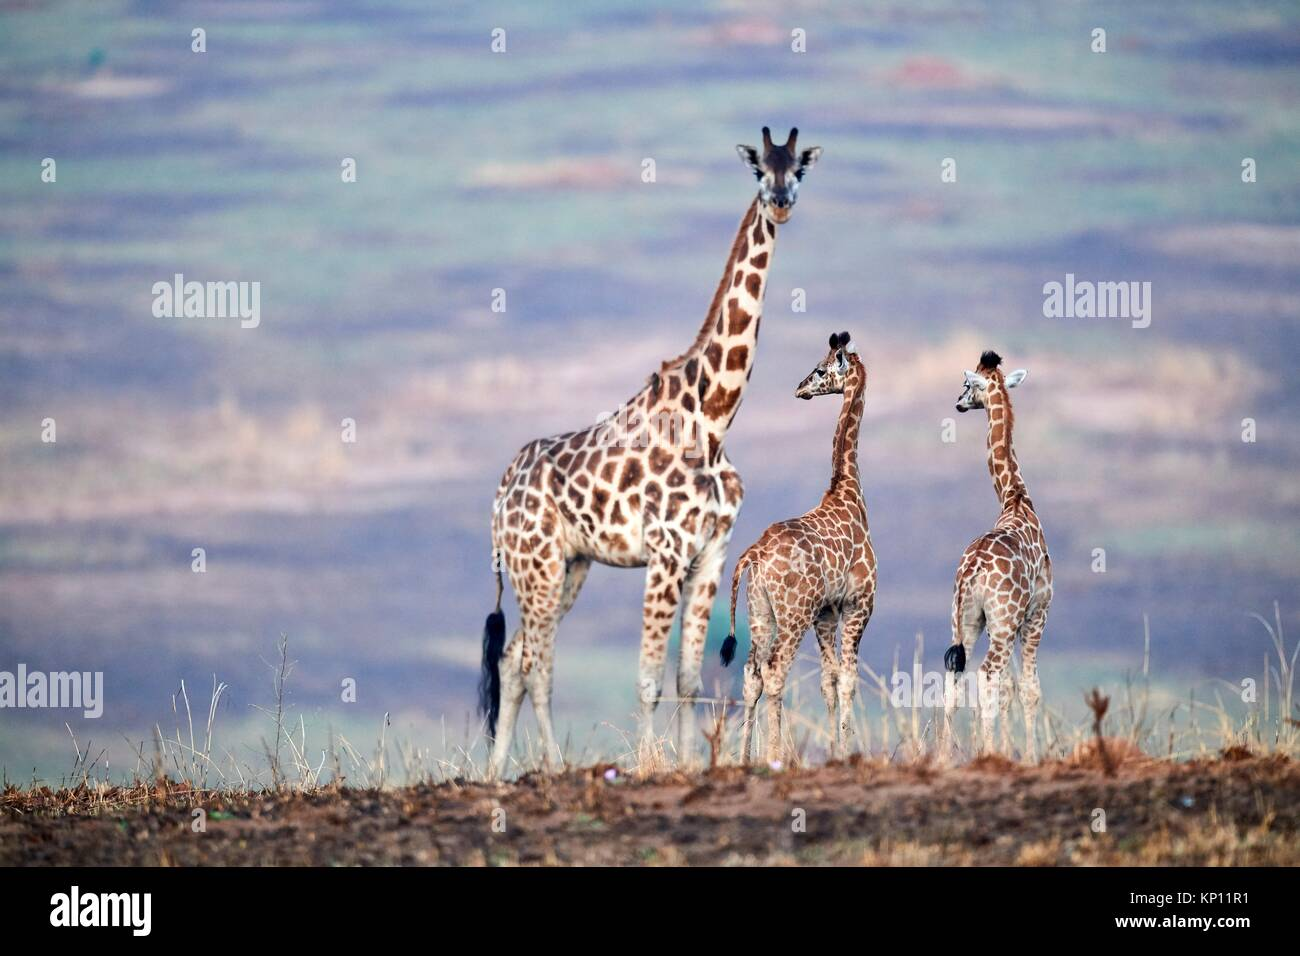 Rothschild's giraffe mother and young (Giraffa camelopardalis rothschildi) Murchisson Falls National Park, Uganda. - Stock Image